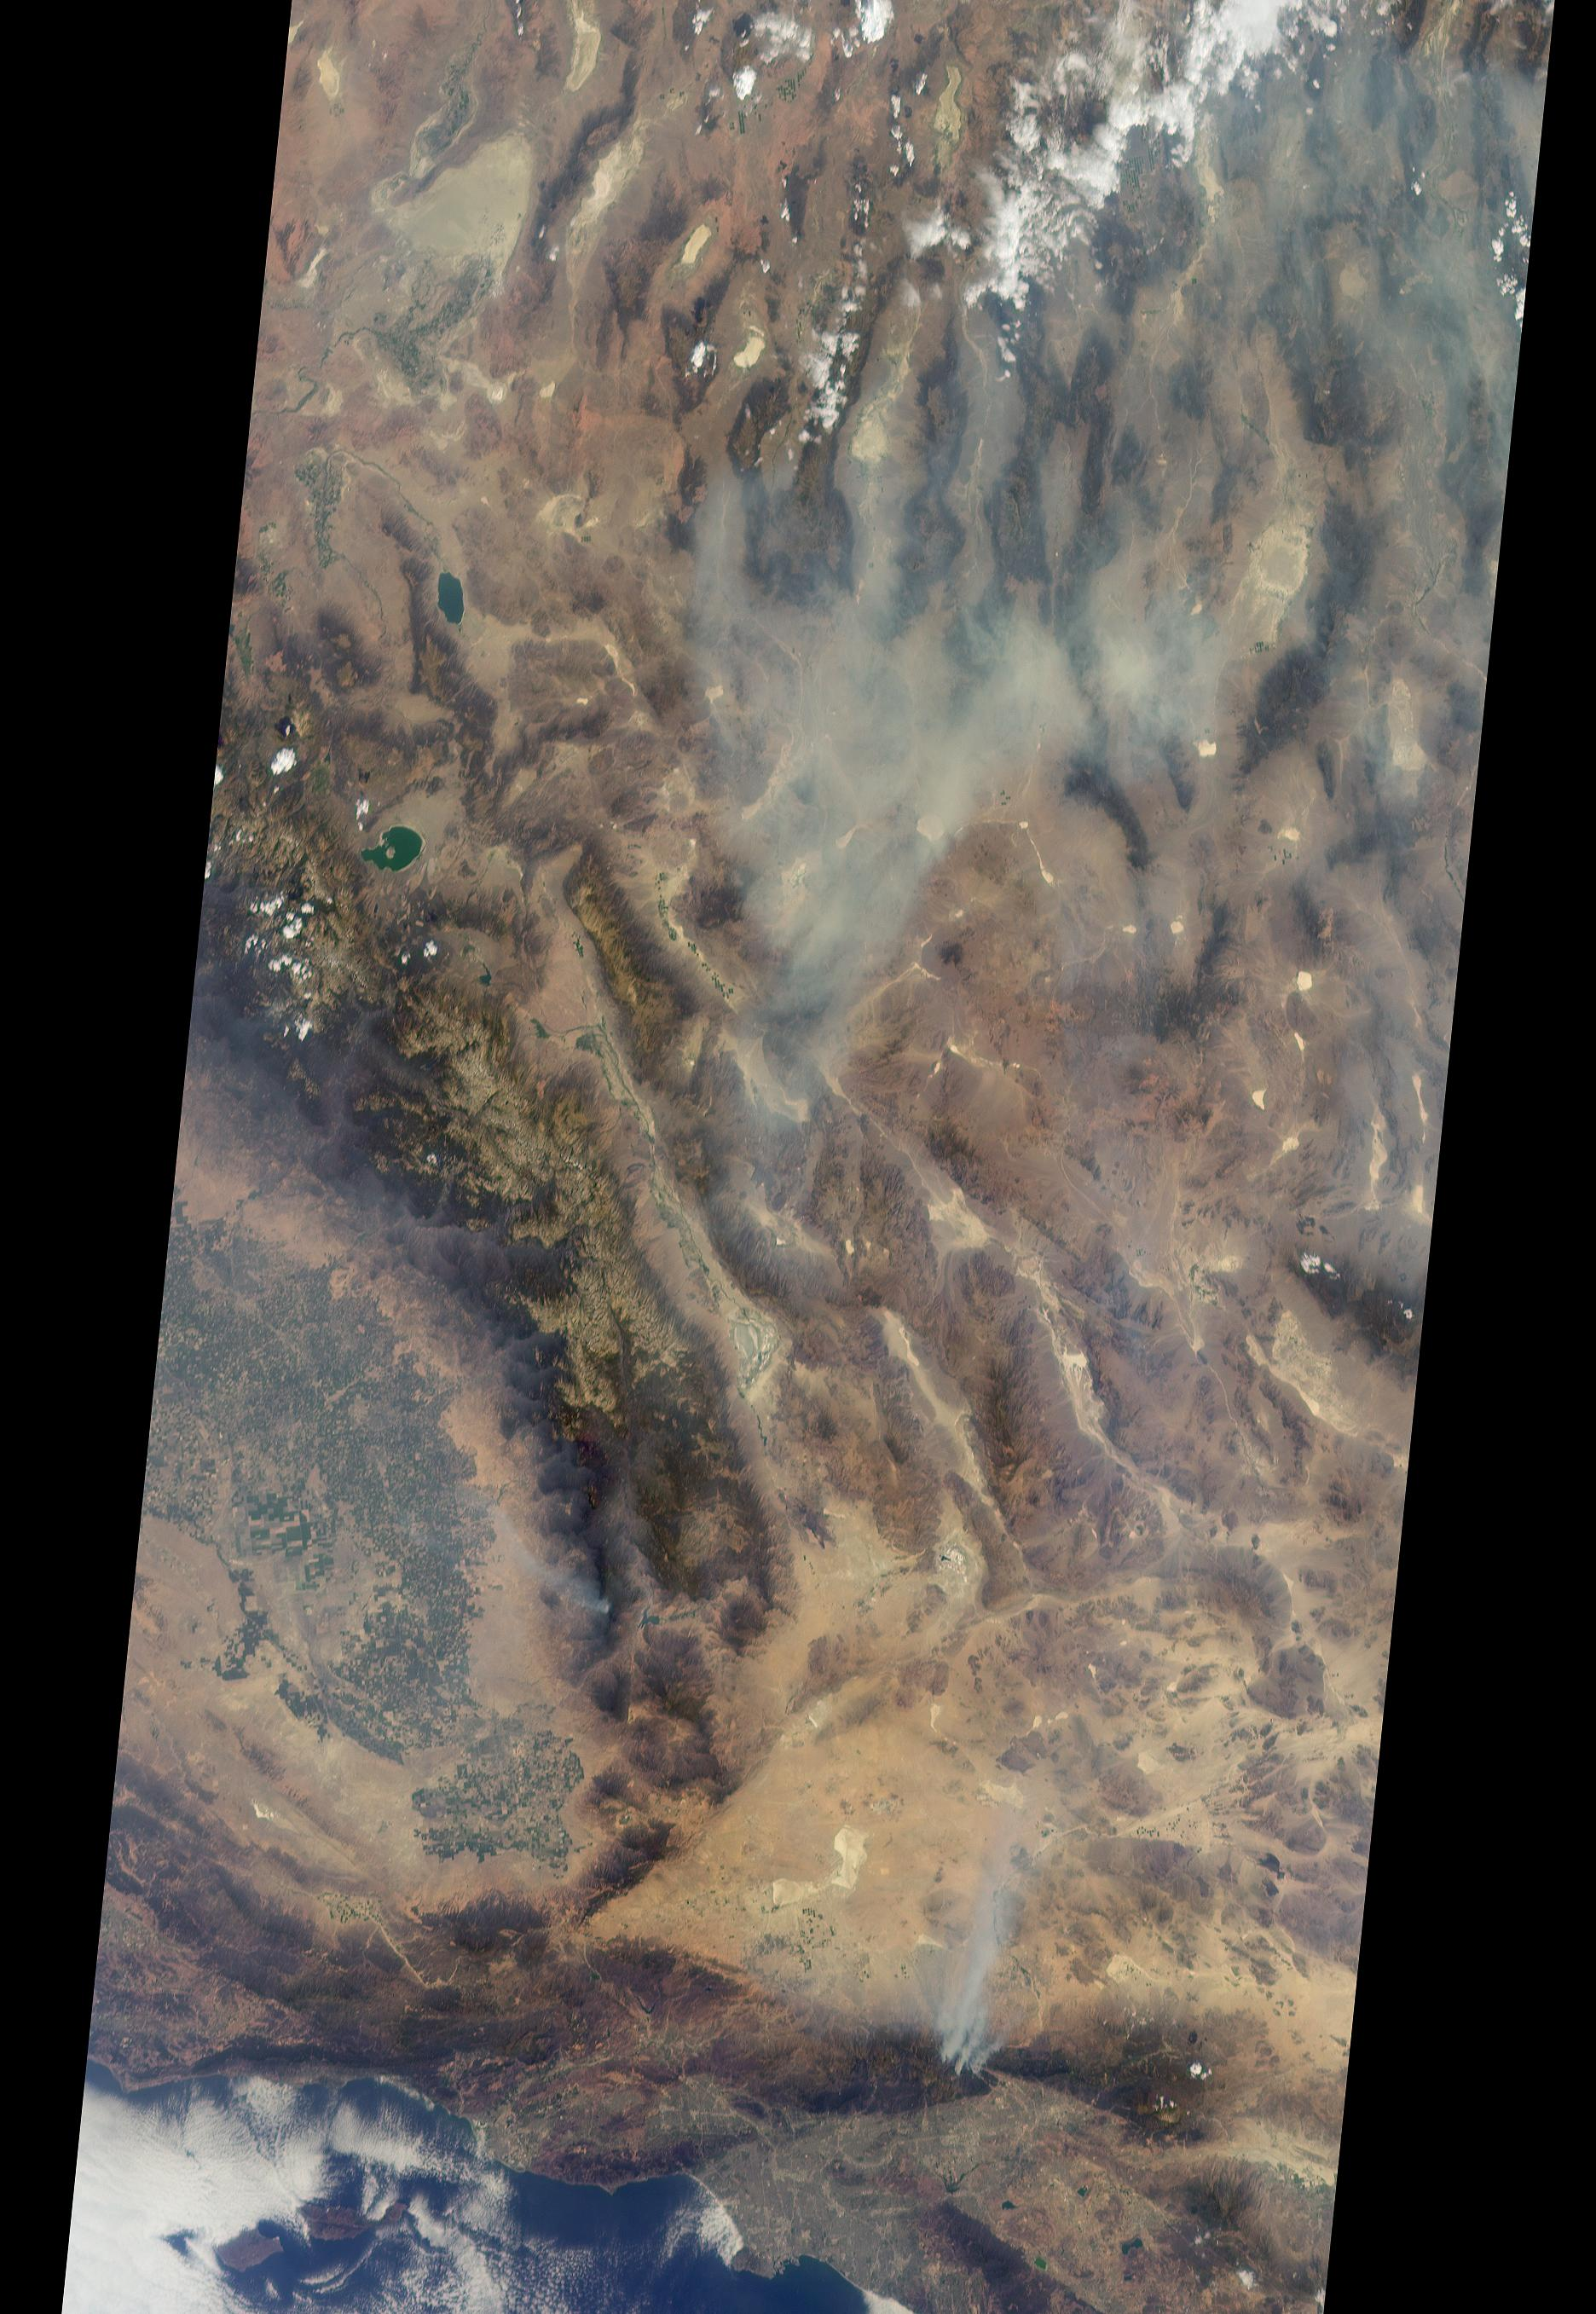 Sprawling Blue Cut Wildfire in California Spied by NASA Satellites